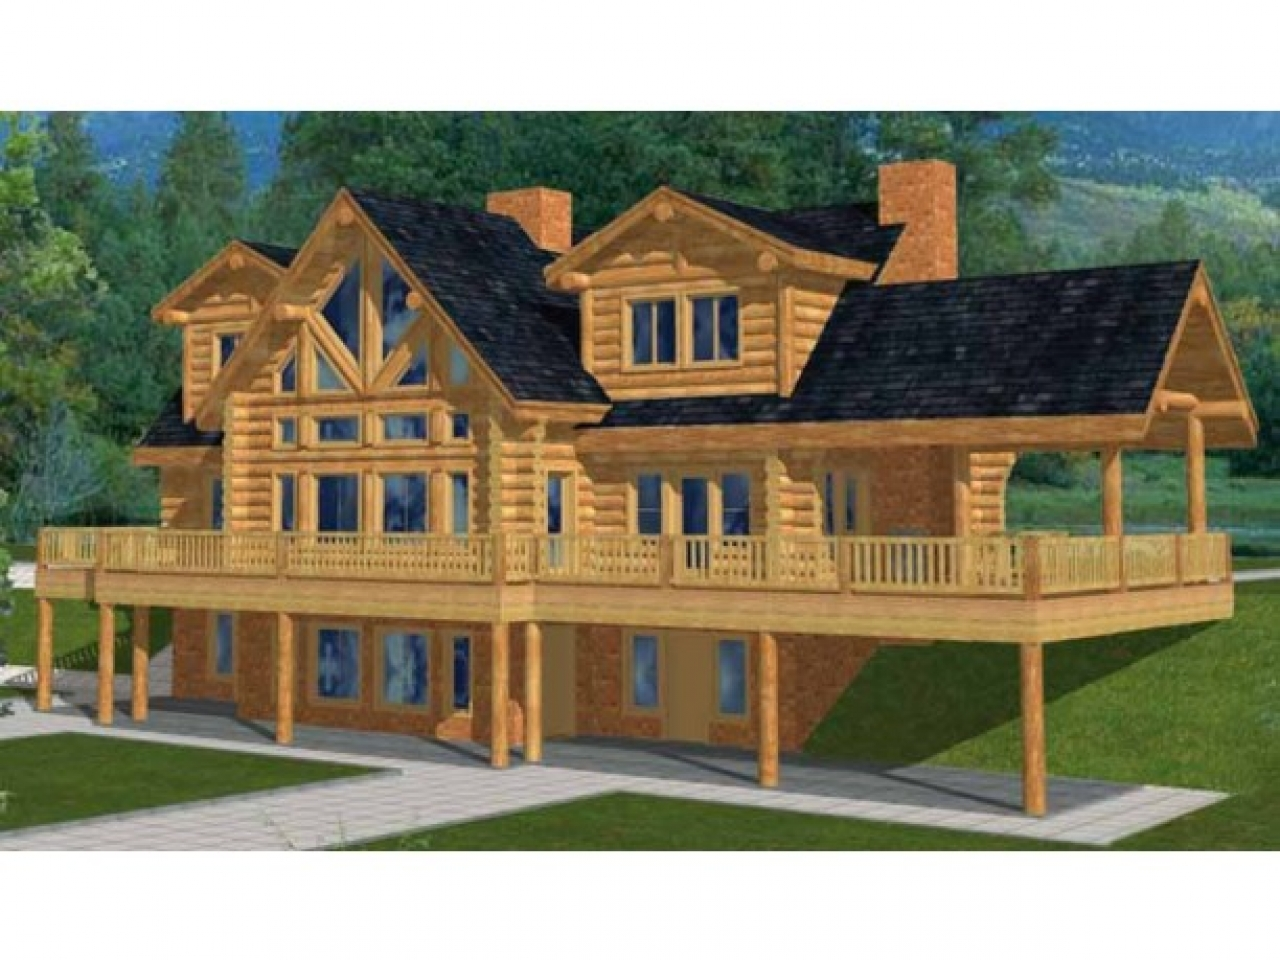 Two story log cabin house plans inexpensive modular homes for Log cabin ranch home plans